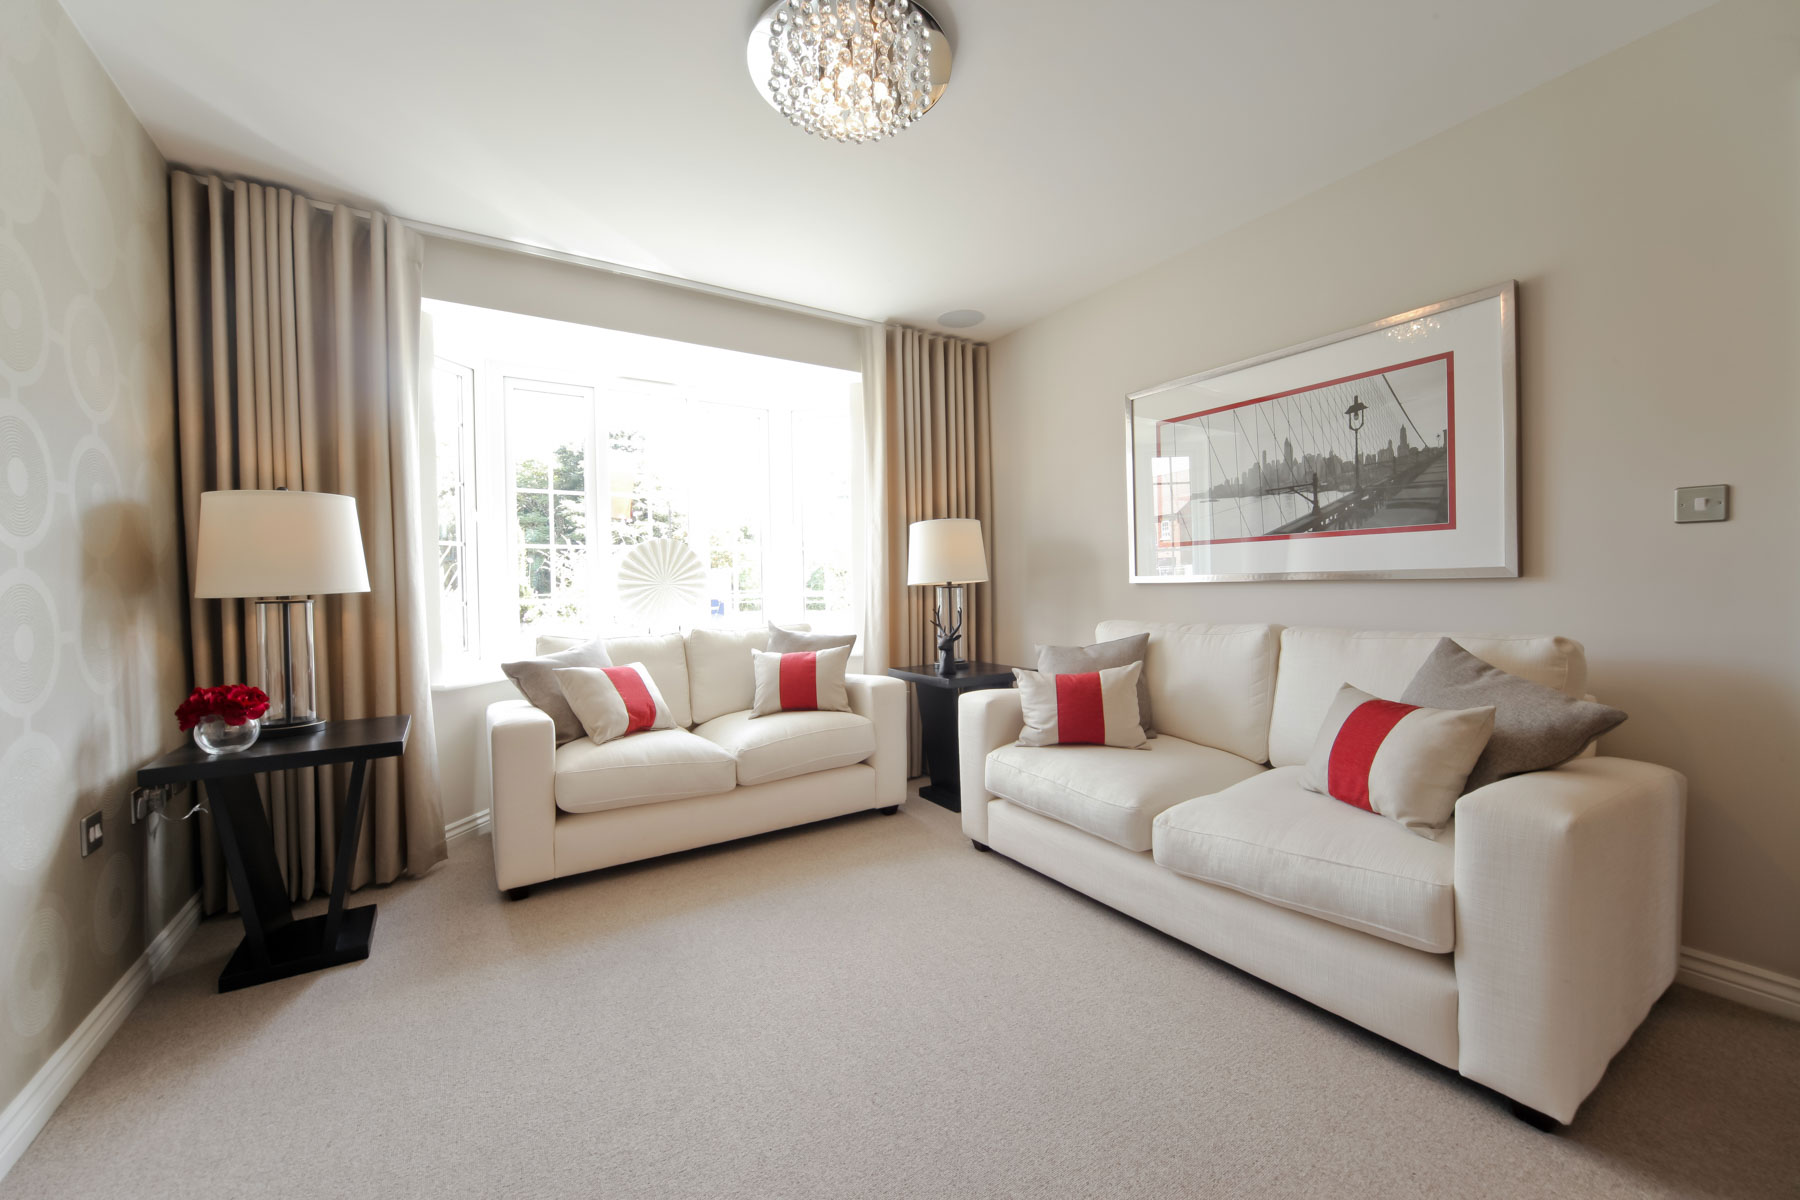 006__WV_Downham_Living_Room